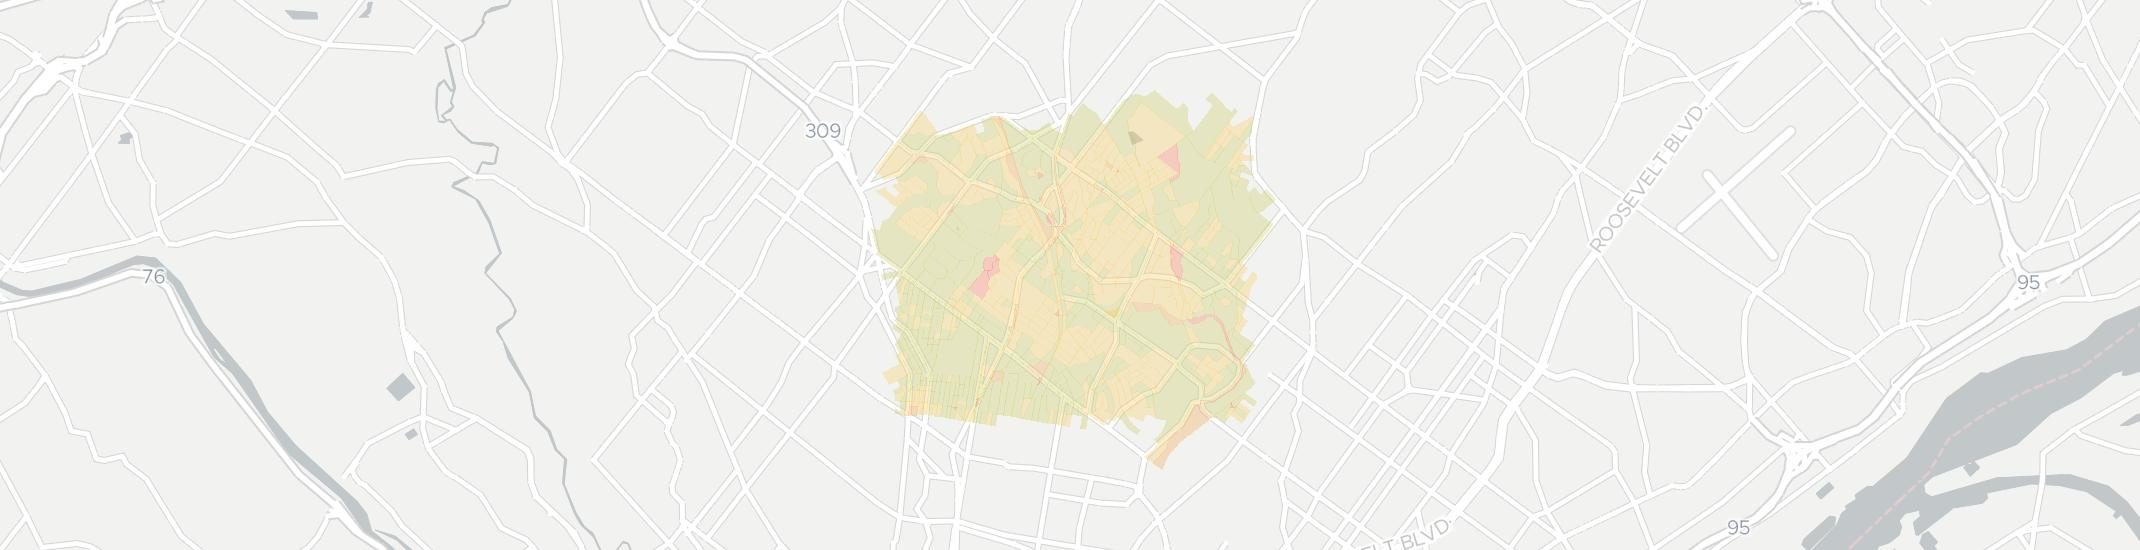 Elkins Park Internet Competition Map. Click for interactive map.